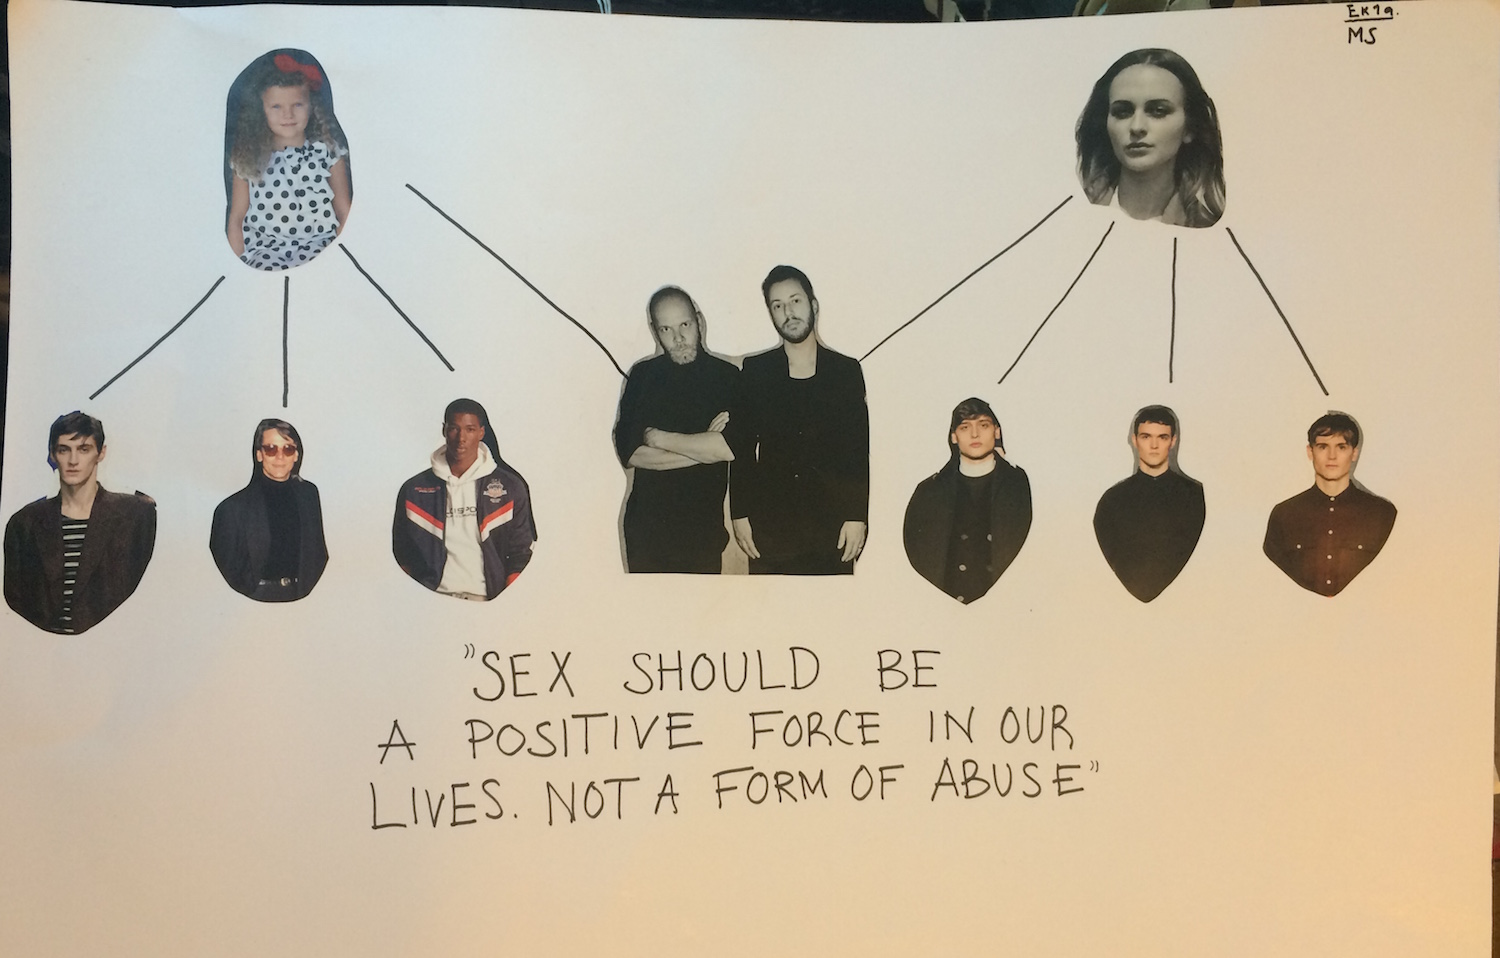 Sex should be a postive force in our lives. Not a form of abuse